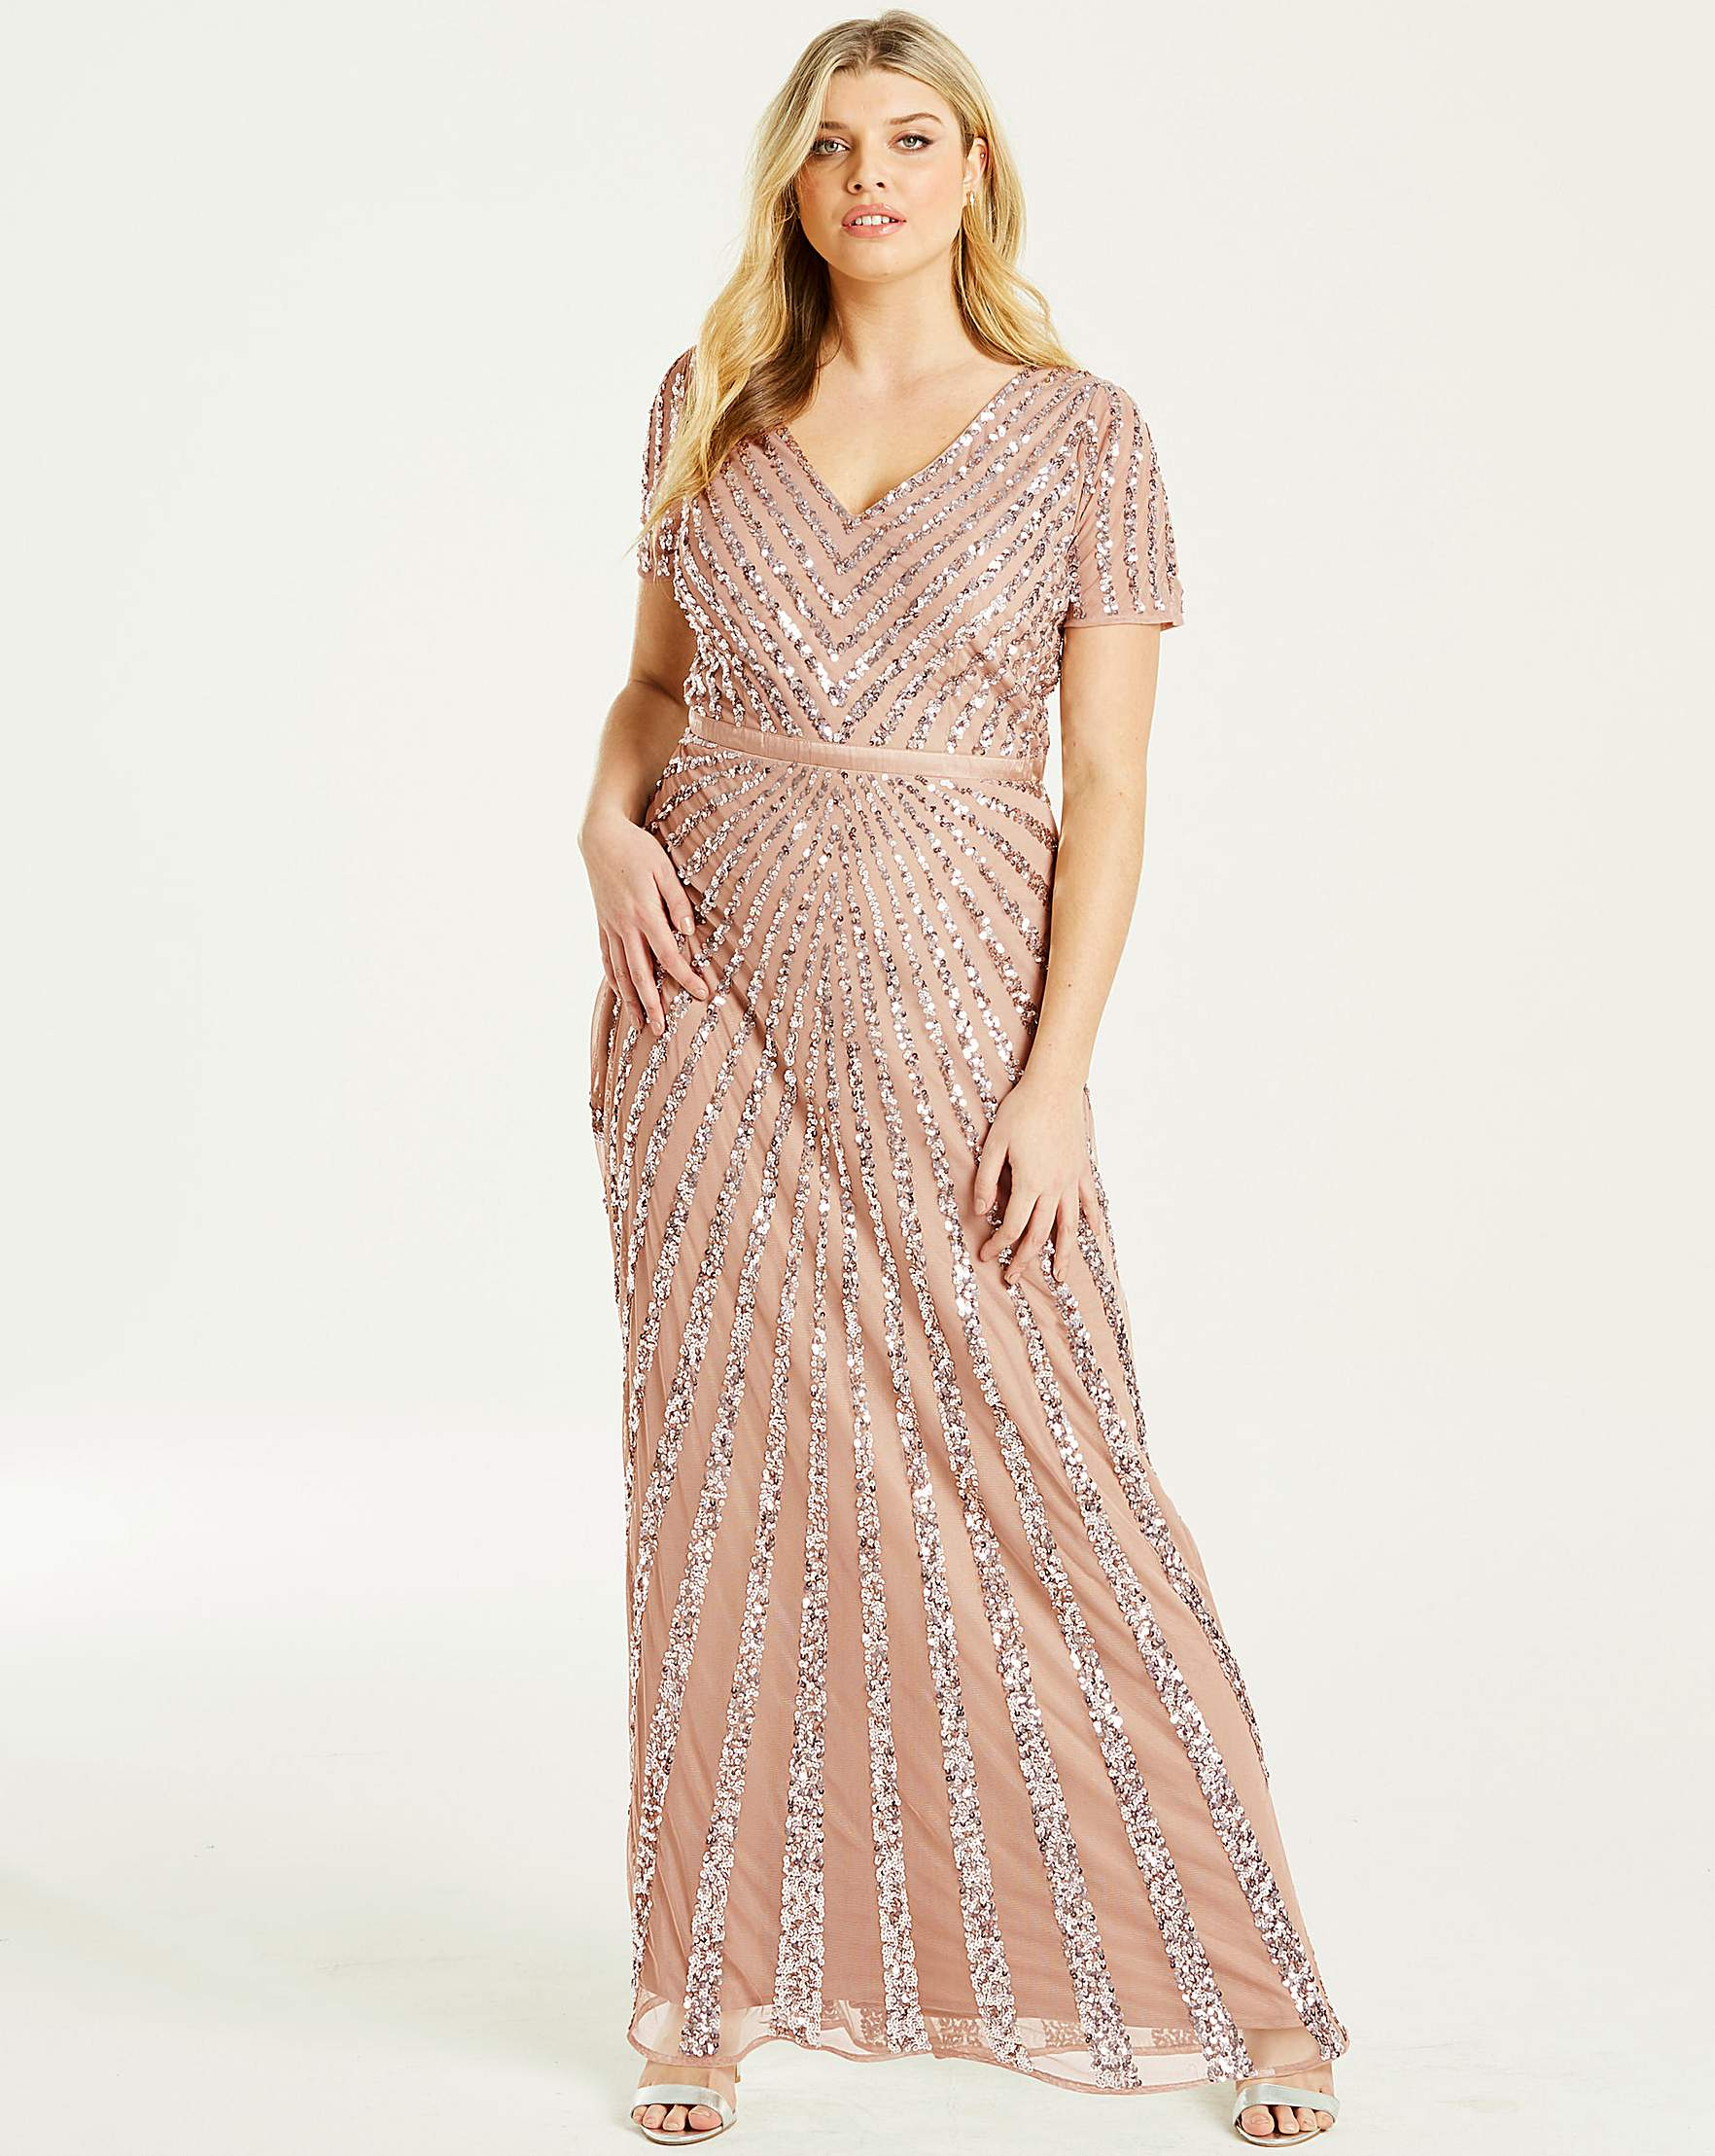 bfa4c4d4ed4 Maya Curve Sequin Maxi Dress